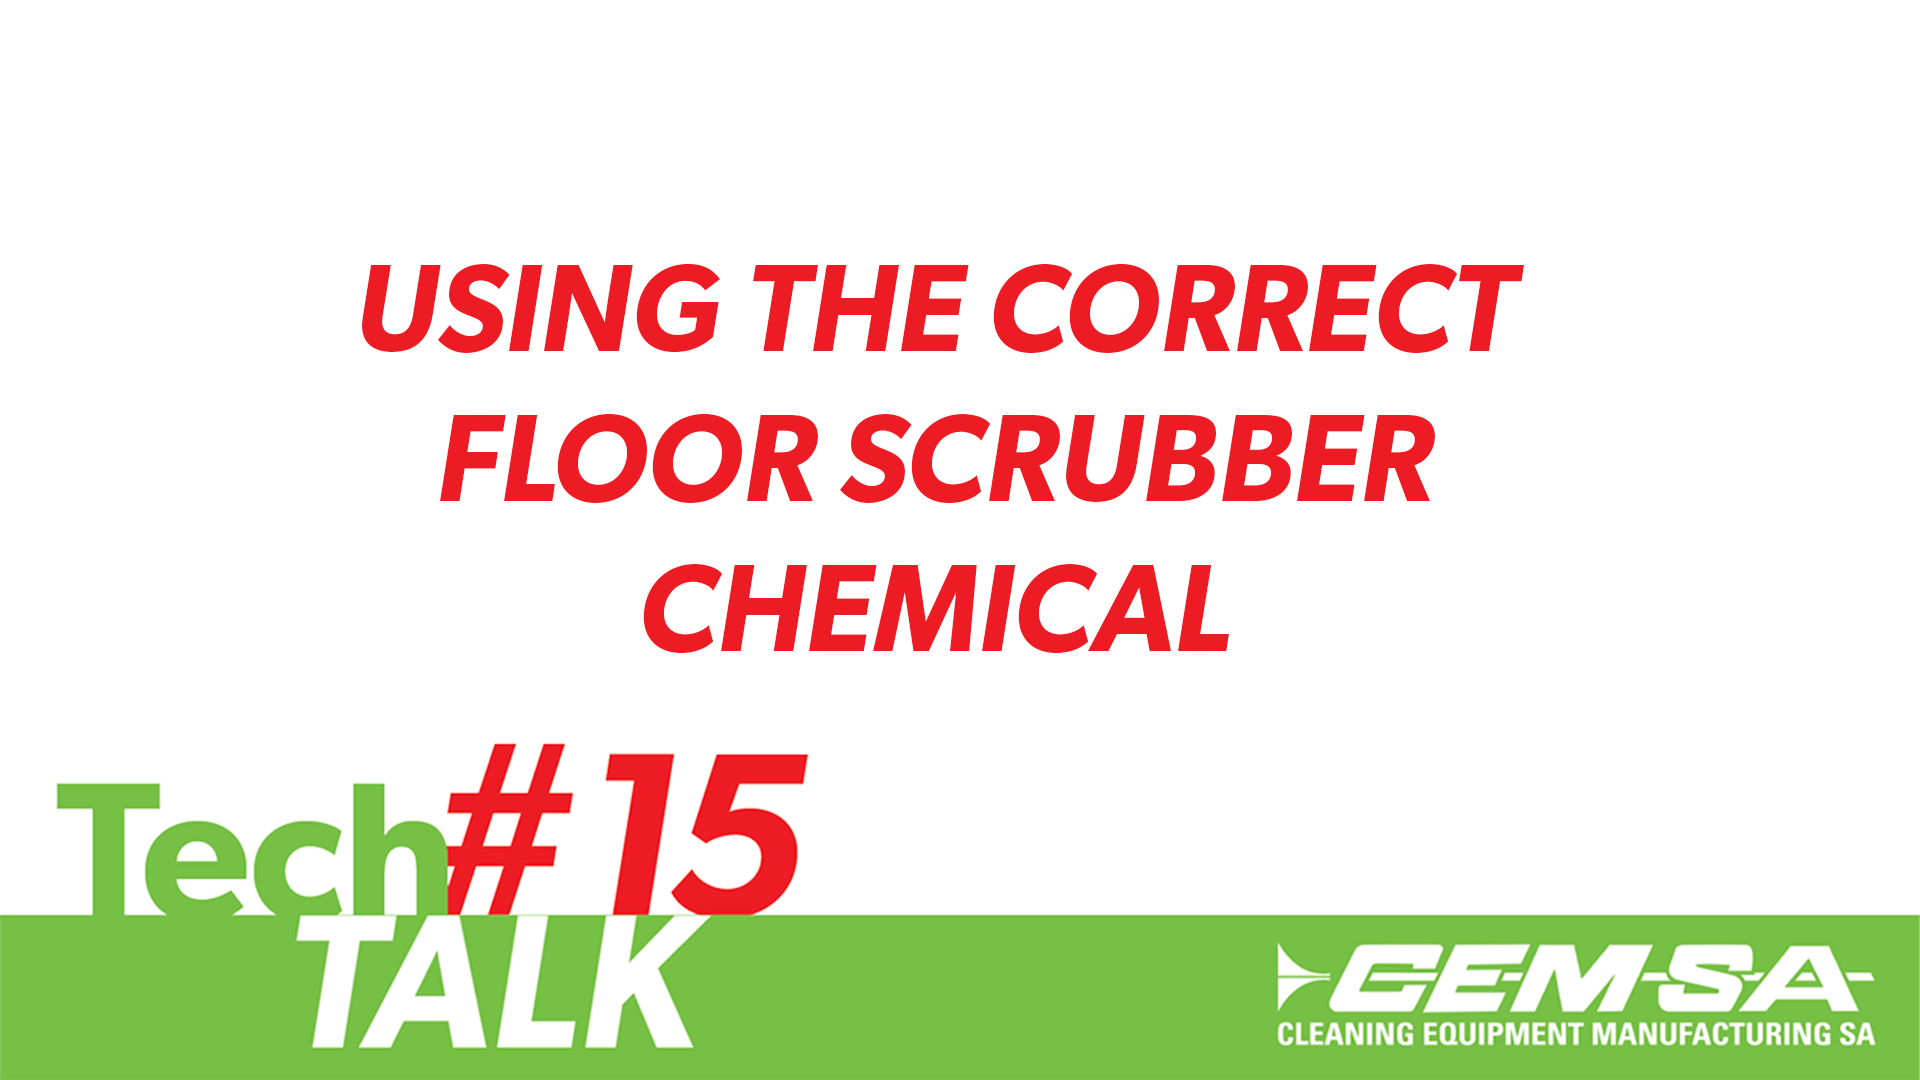 TechTalk #15- Using The Correct Floor Scrubber Chemical